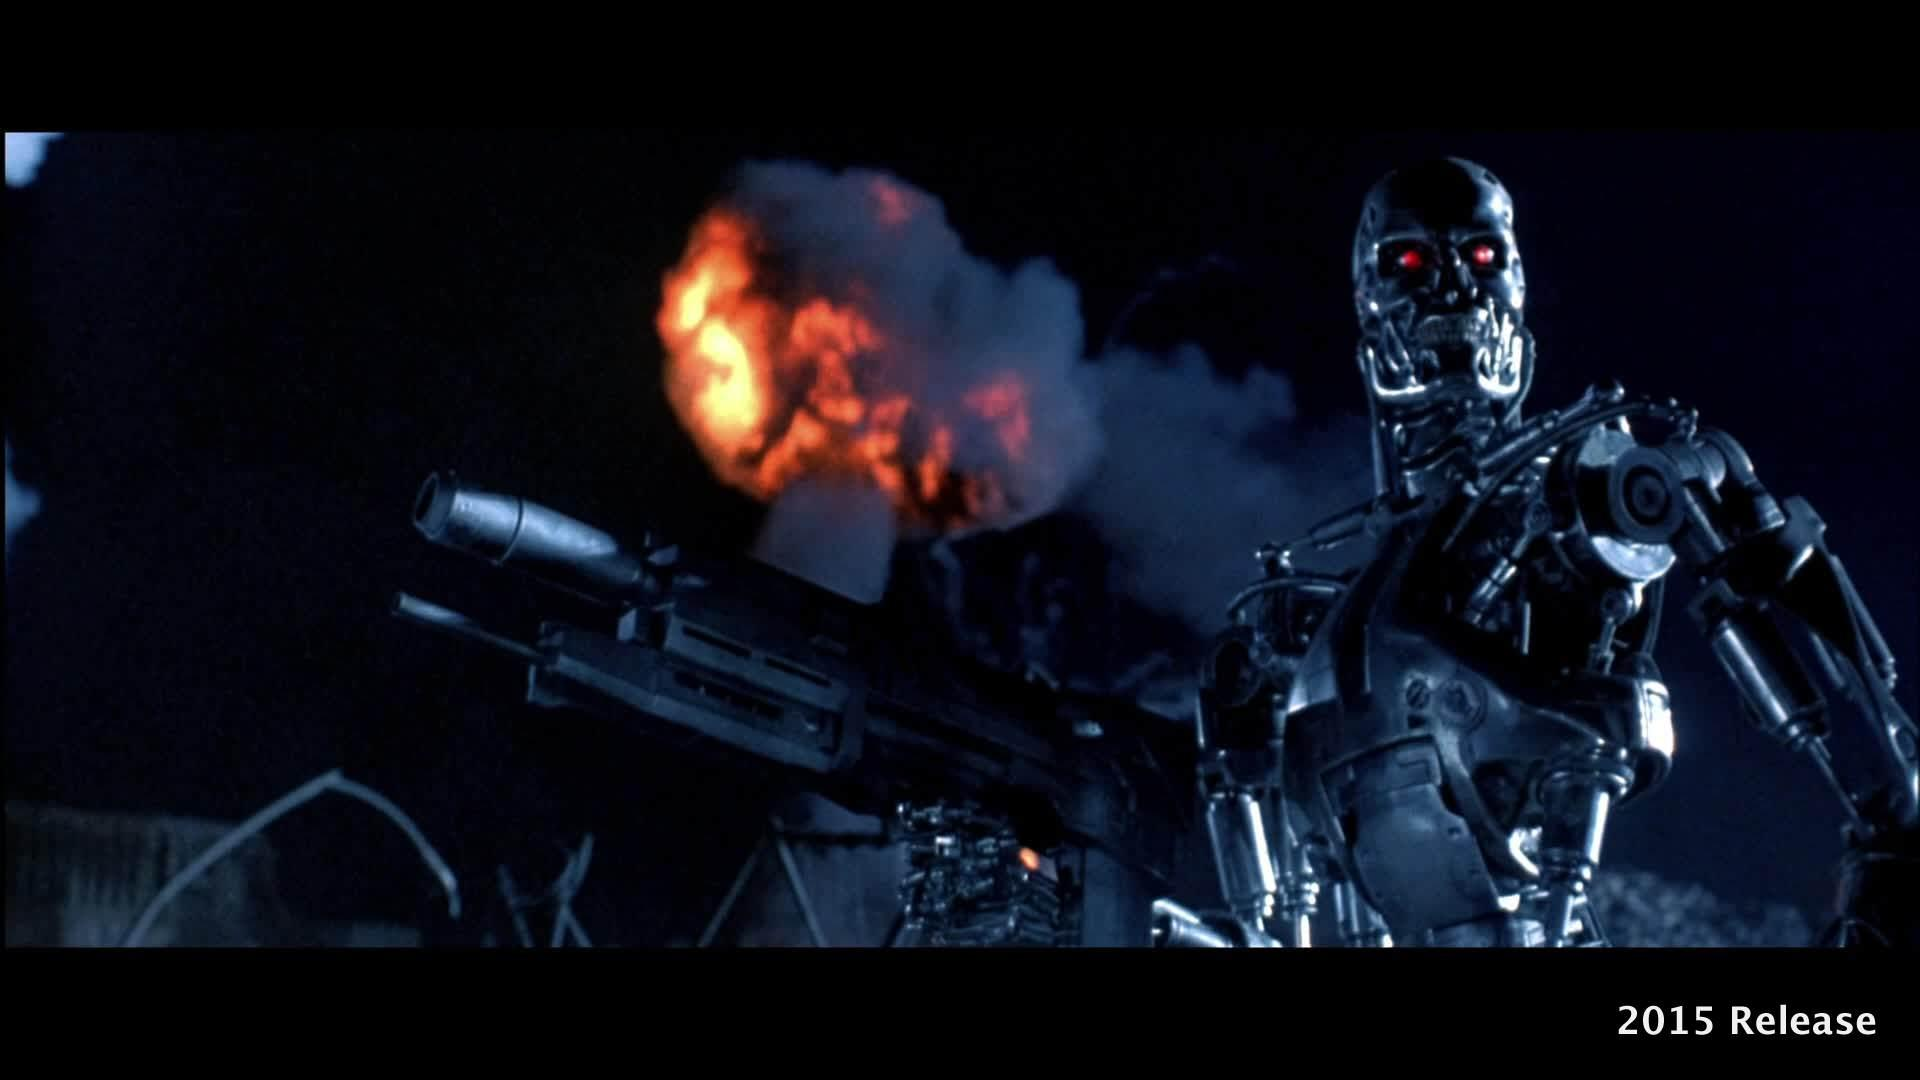 Terminator 2: Judgment Day Wallpapers and Background Images - stmed.net